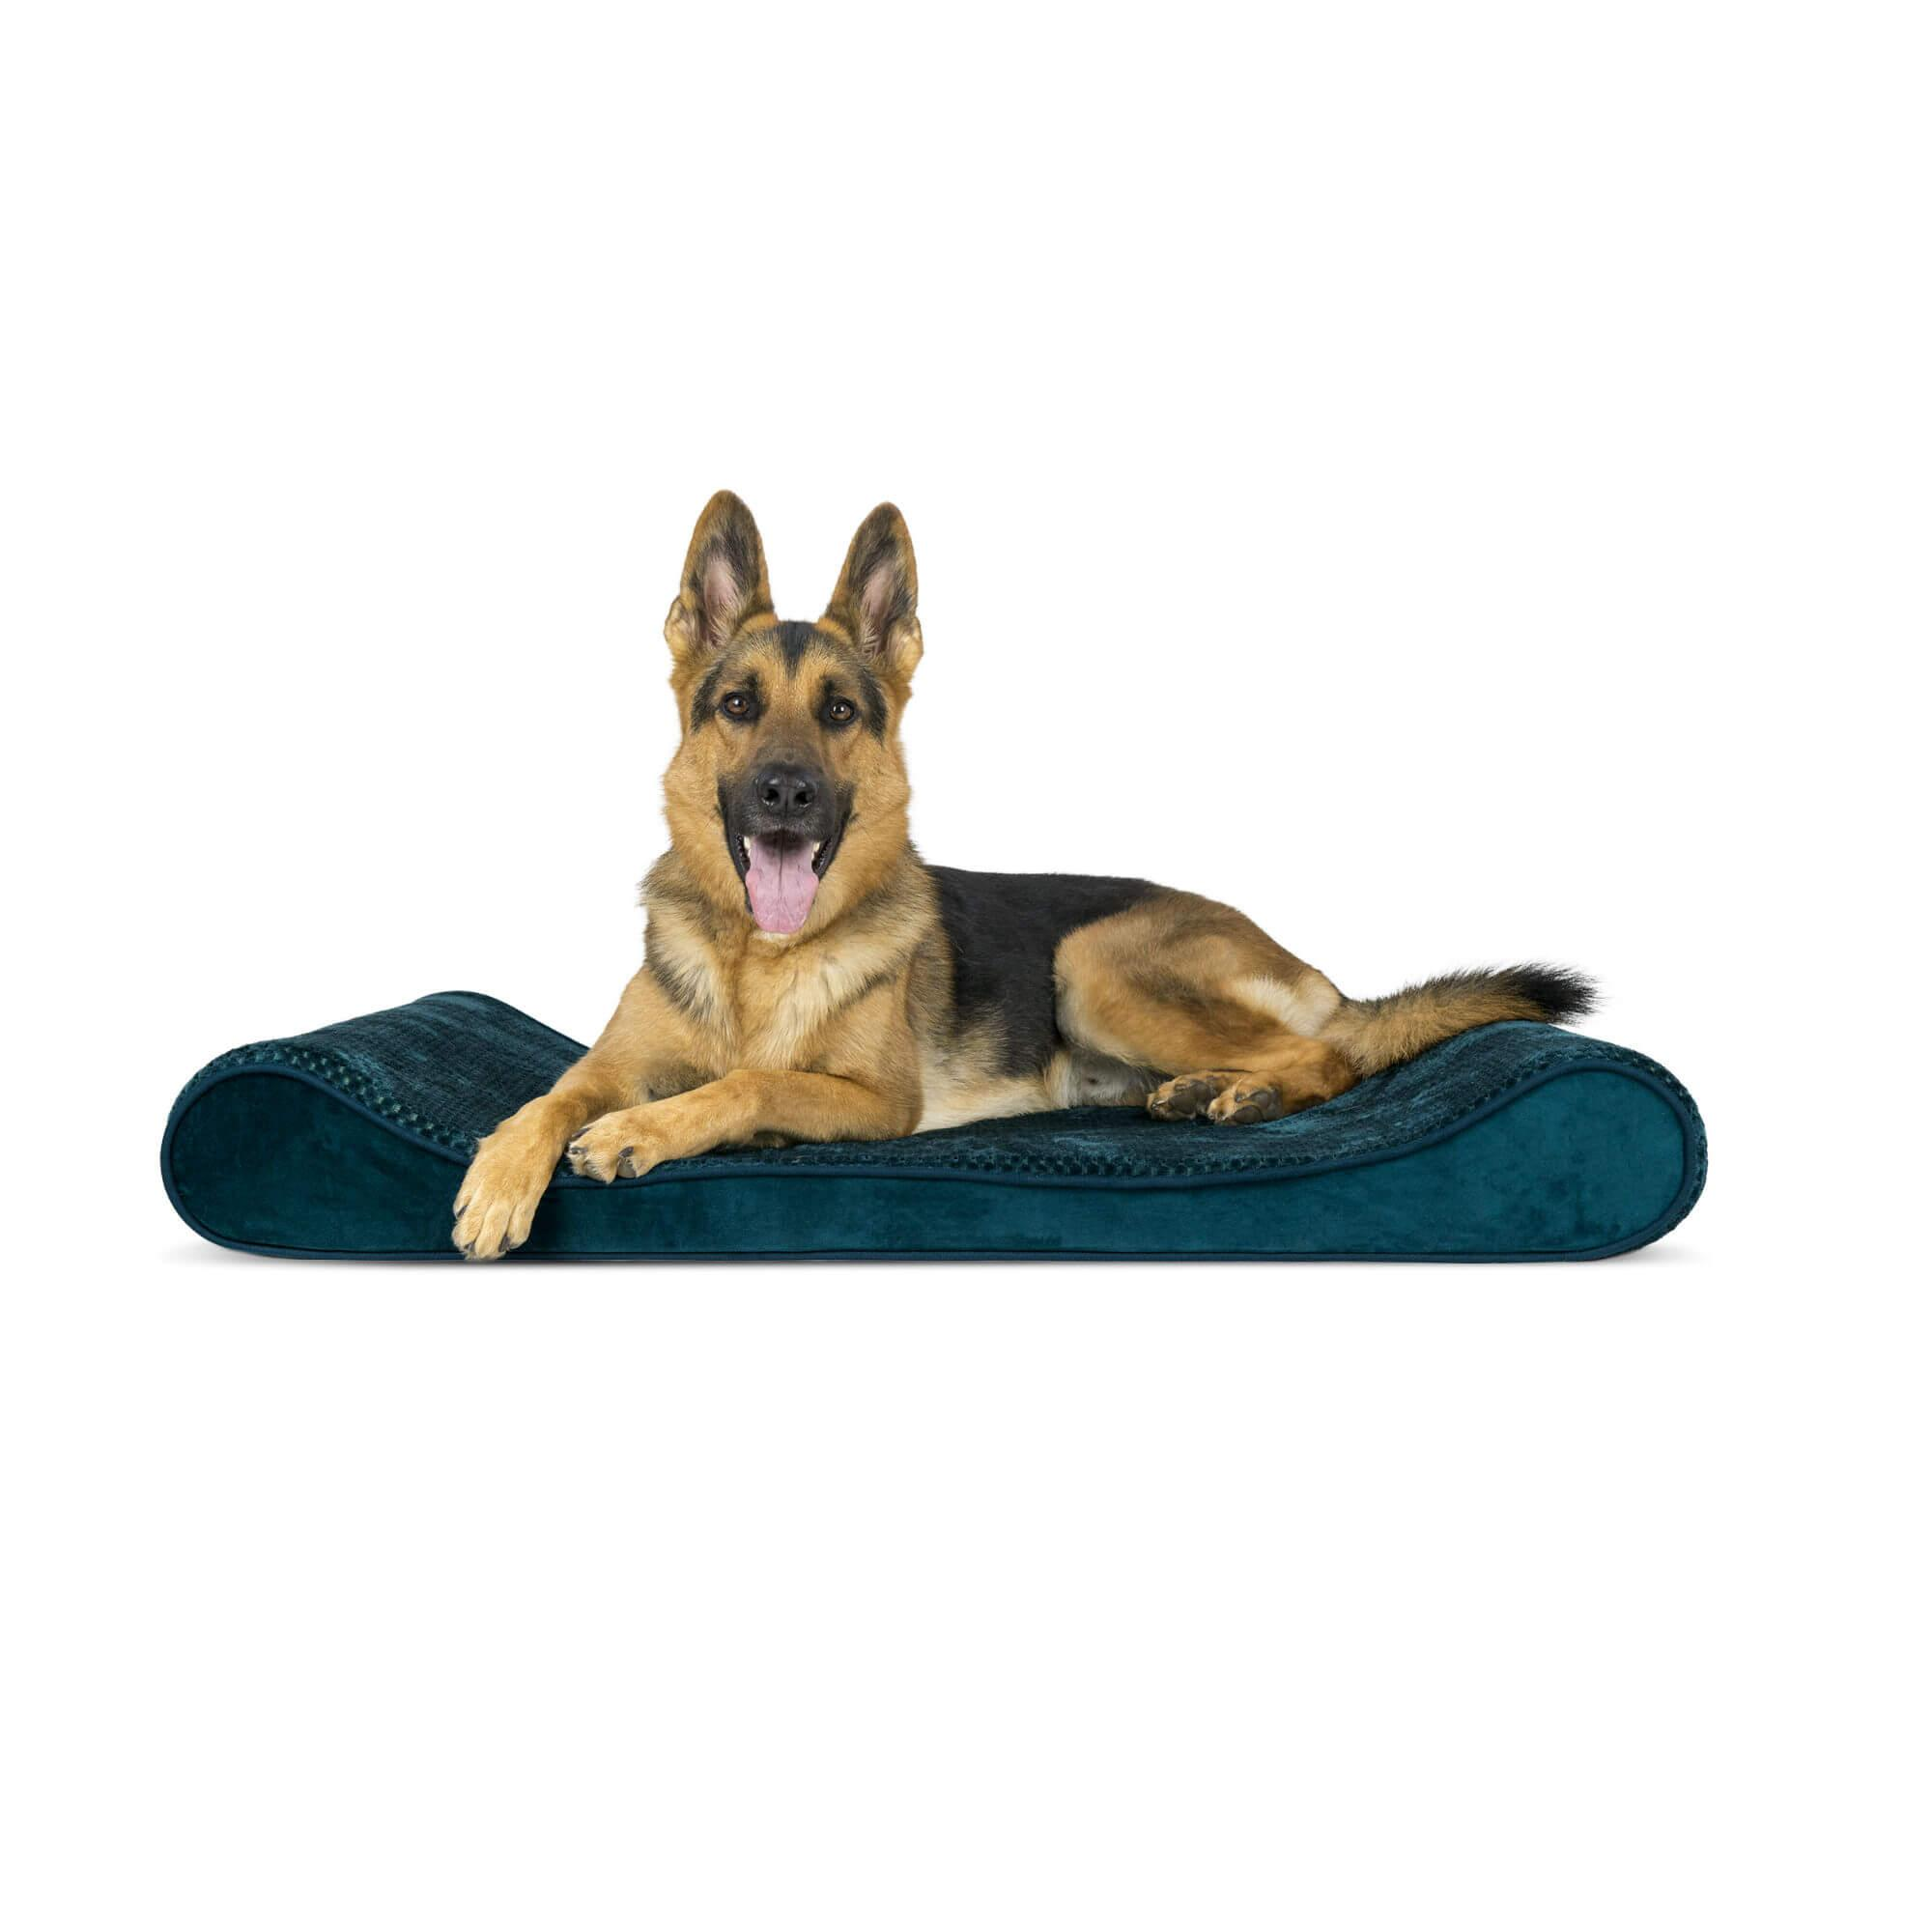 Minky Plush & Velvet Luxe Lounger Orthopedic Dog Bed - Spruce Blue